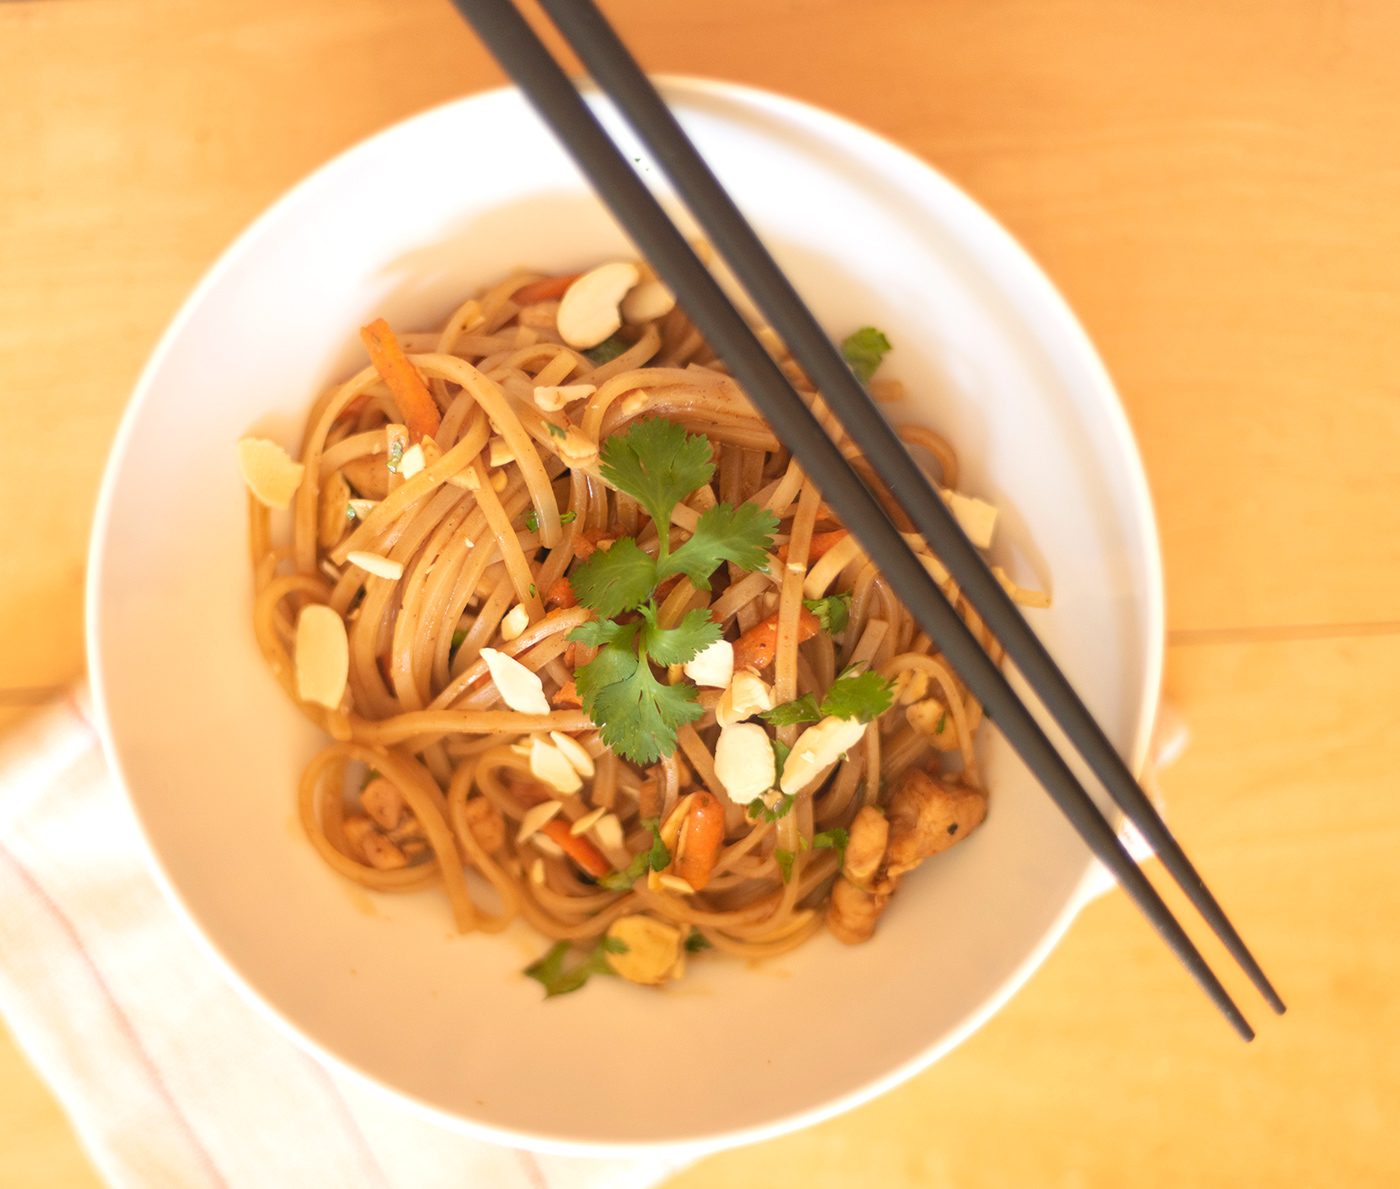 Sweet and Spicy Thai noodles in a bowl with chopsticks